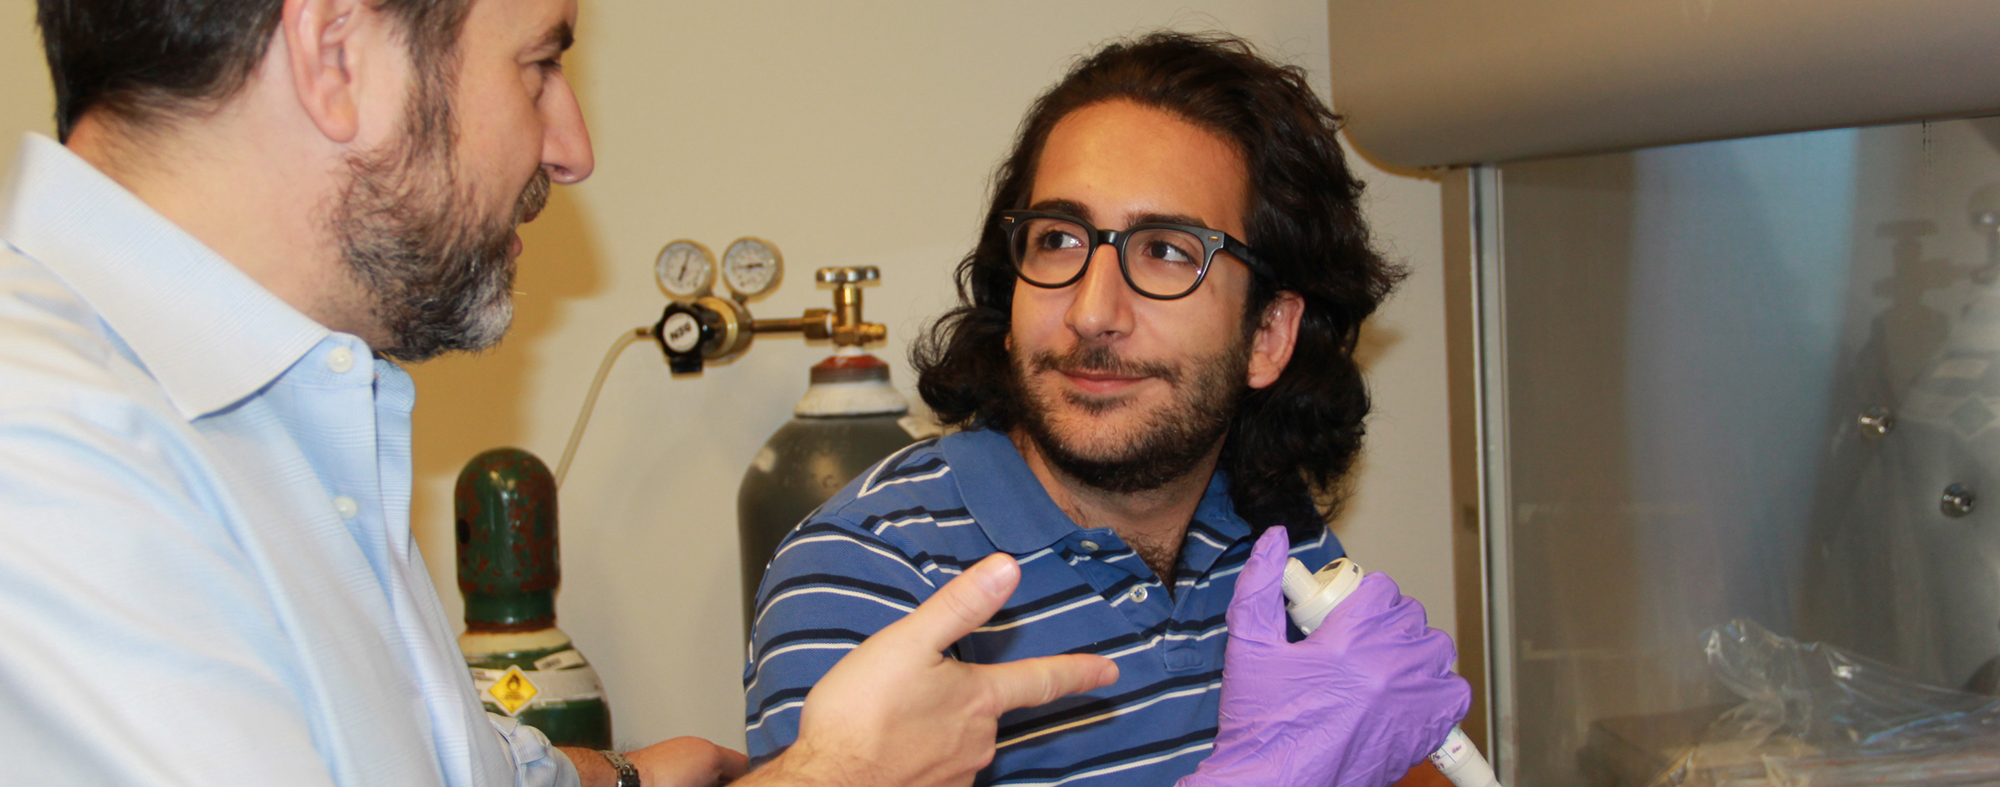 Fellowship recipient Jawad Hoballah works with professor Adam Wax in lab